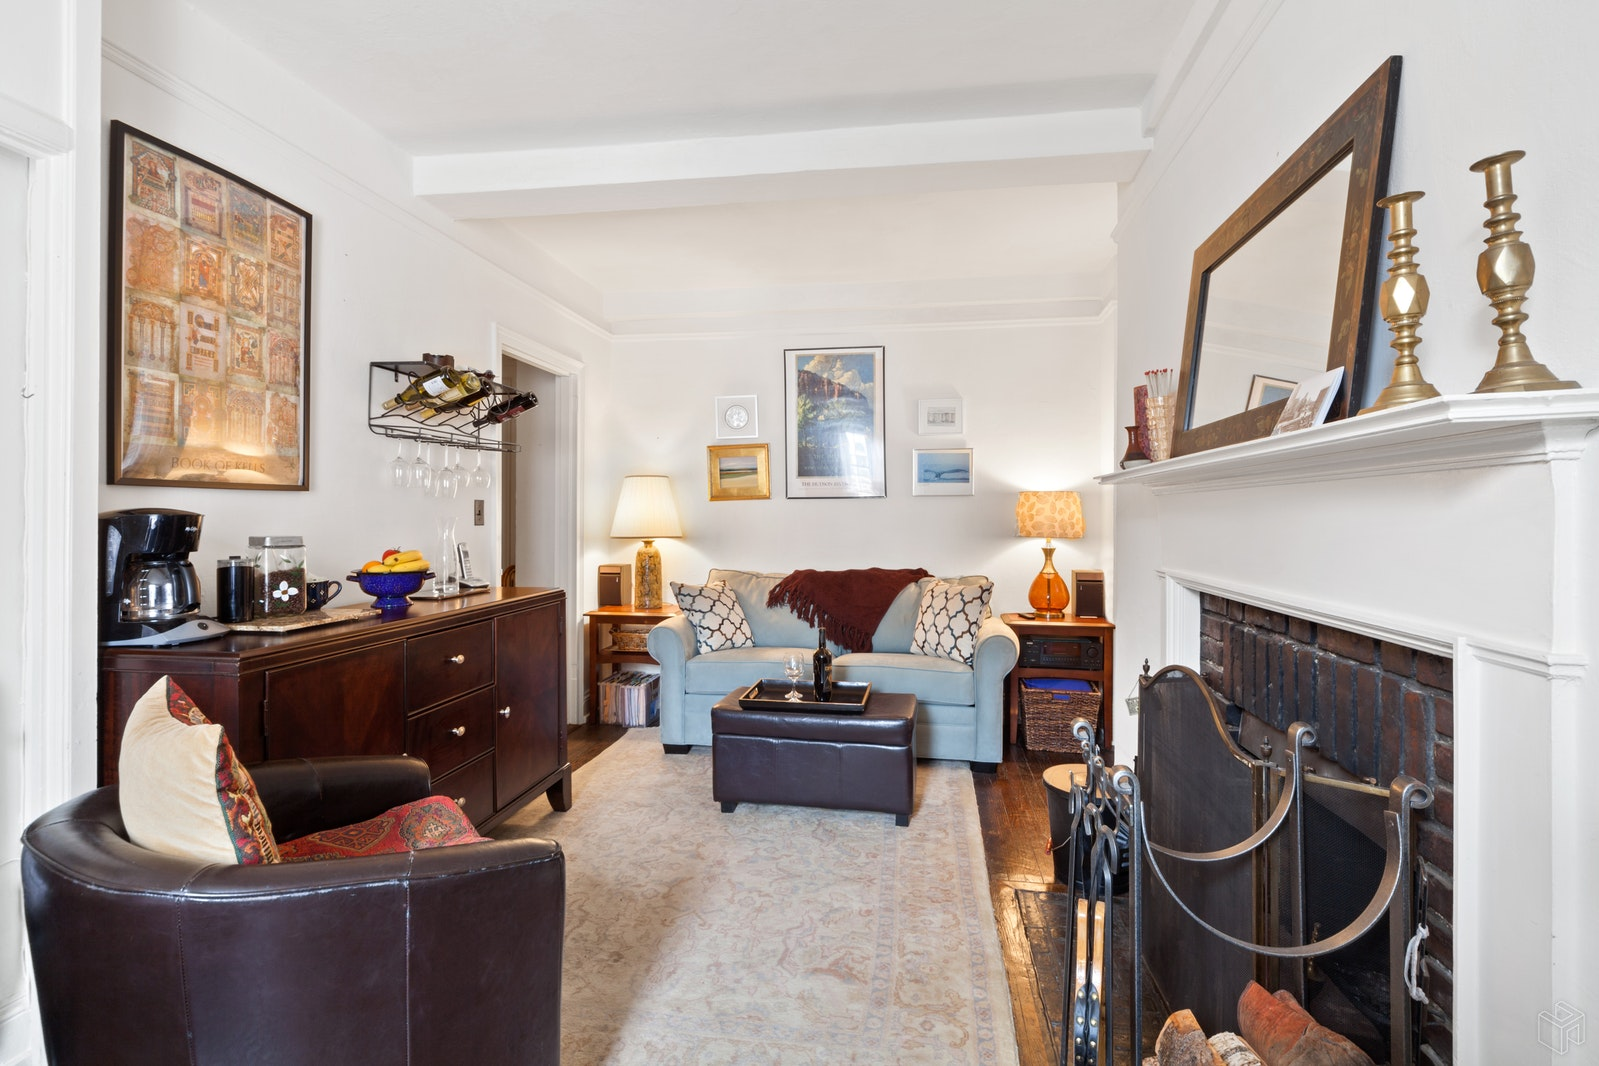 1 Bdr Beekman COOP-WBFP, Low Maintenance, Midtown East, NYC, 10017, $509,000, Property For Sale, Halstead Real Estate, Photo 1